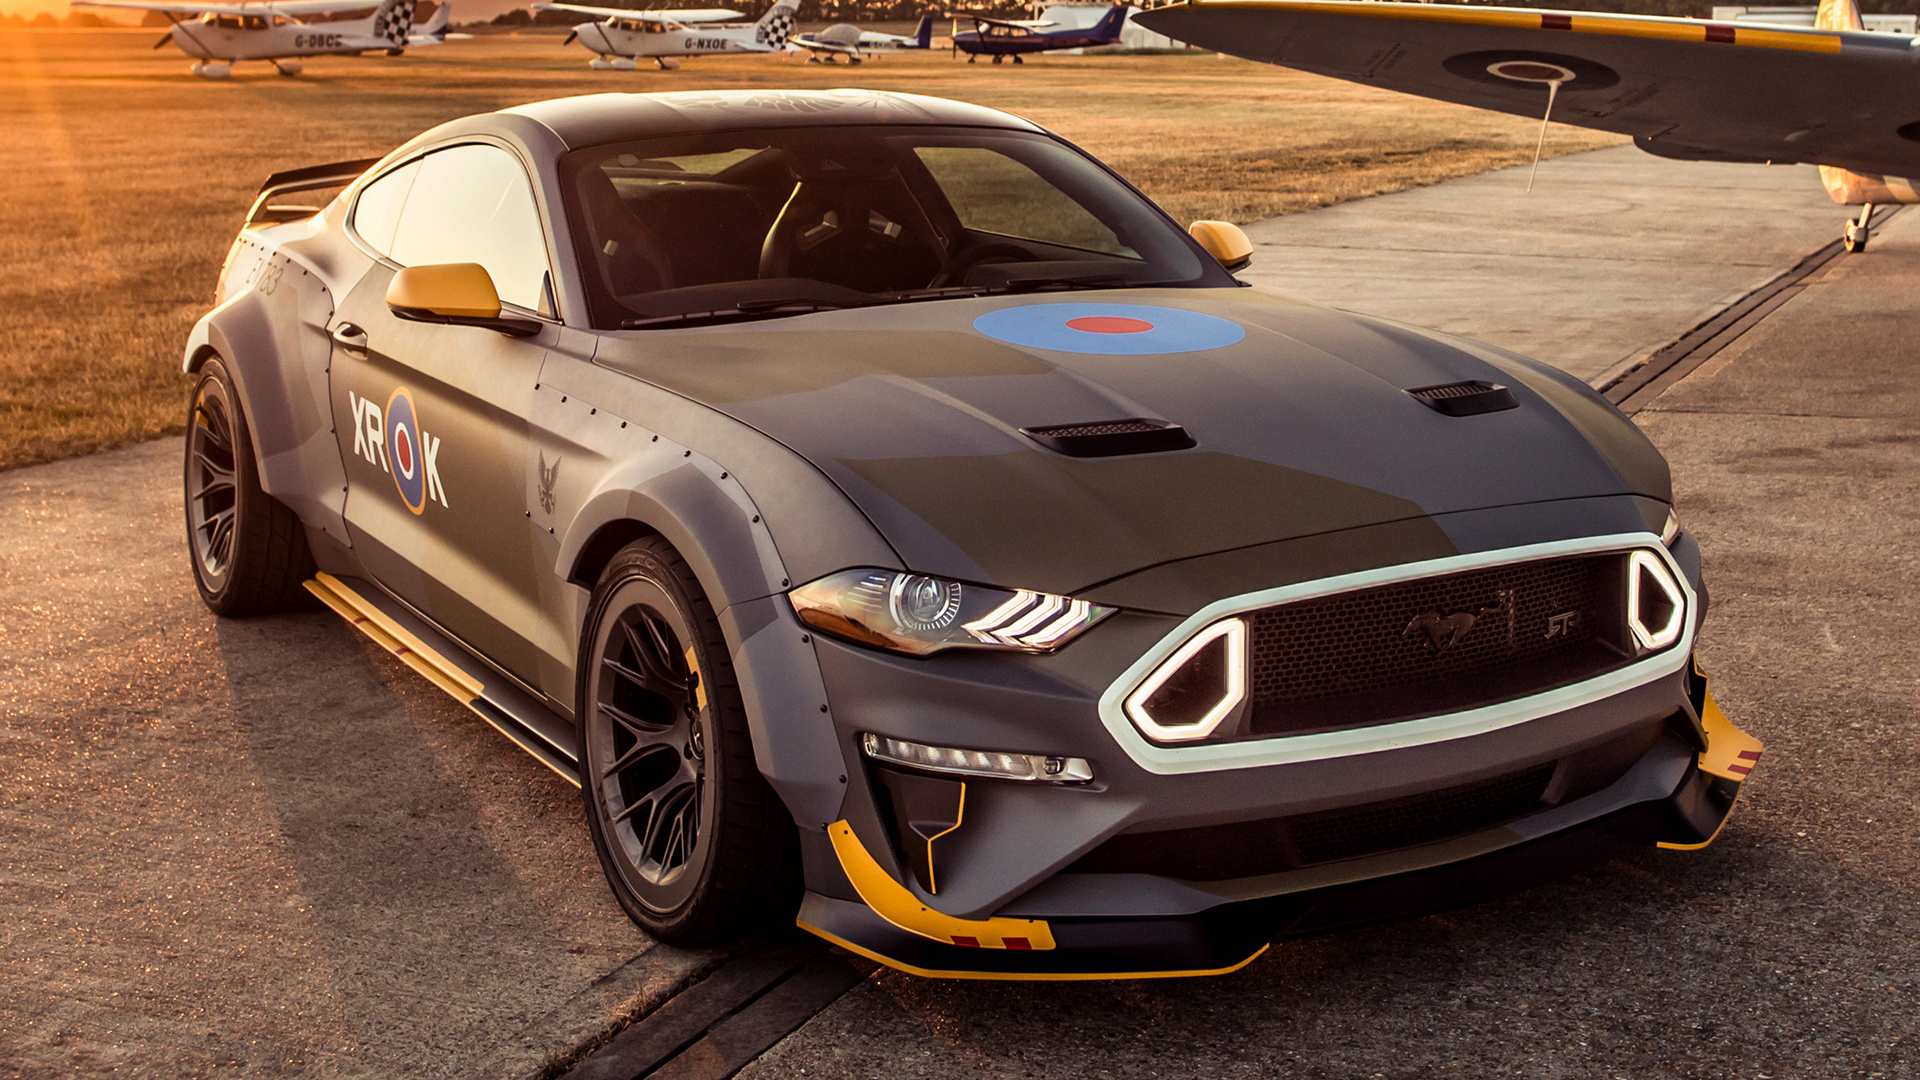 Wallpaper Ford Mustang 2018 Hd Automotive Cars 5863: 2018 Ford Eagle Squadron Mustang GT HD Wallpaper